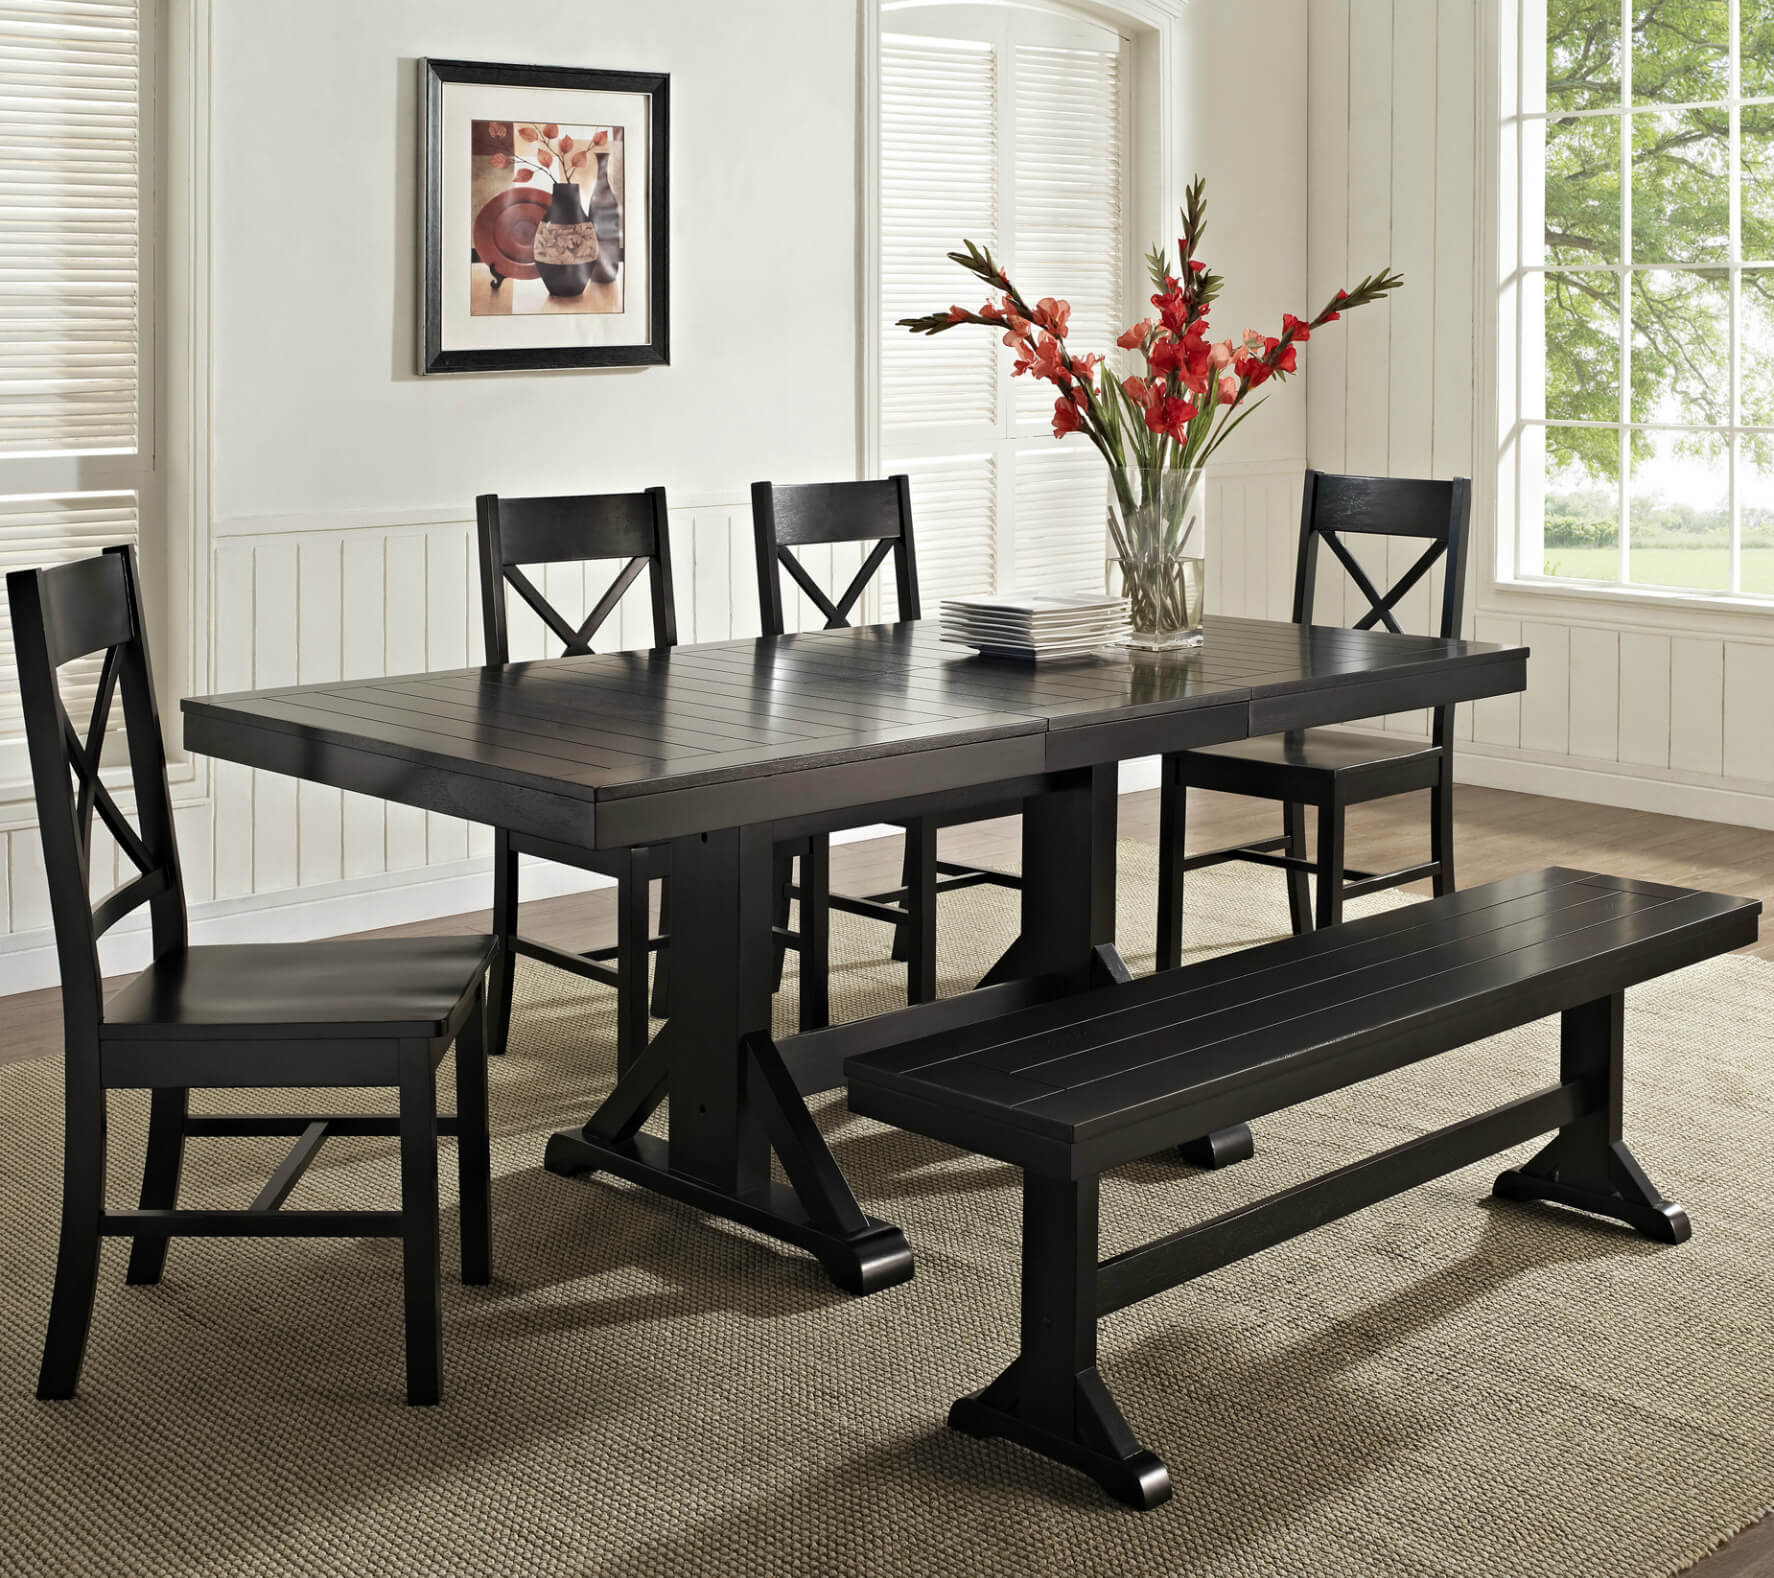 Dining Room Furniture Bench: 26 Dining Room Sets (Big And Small) With Bench Seating (2019